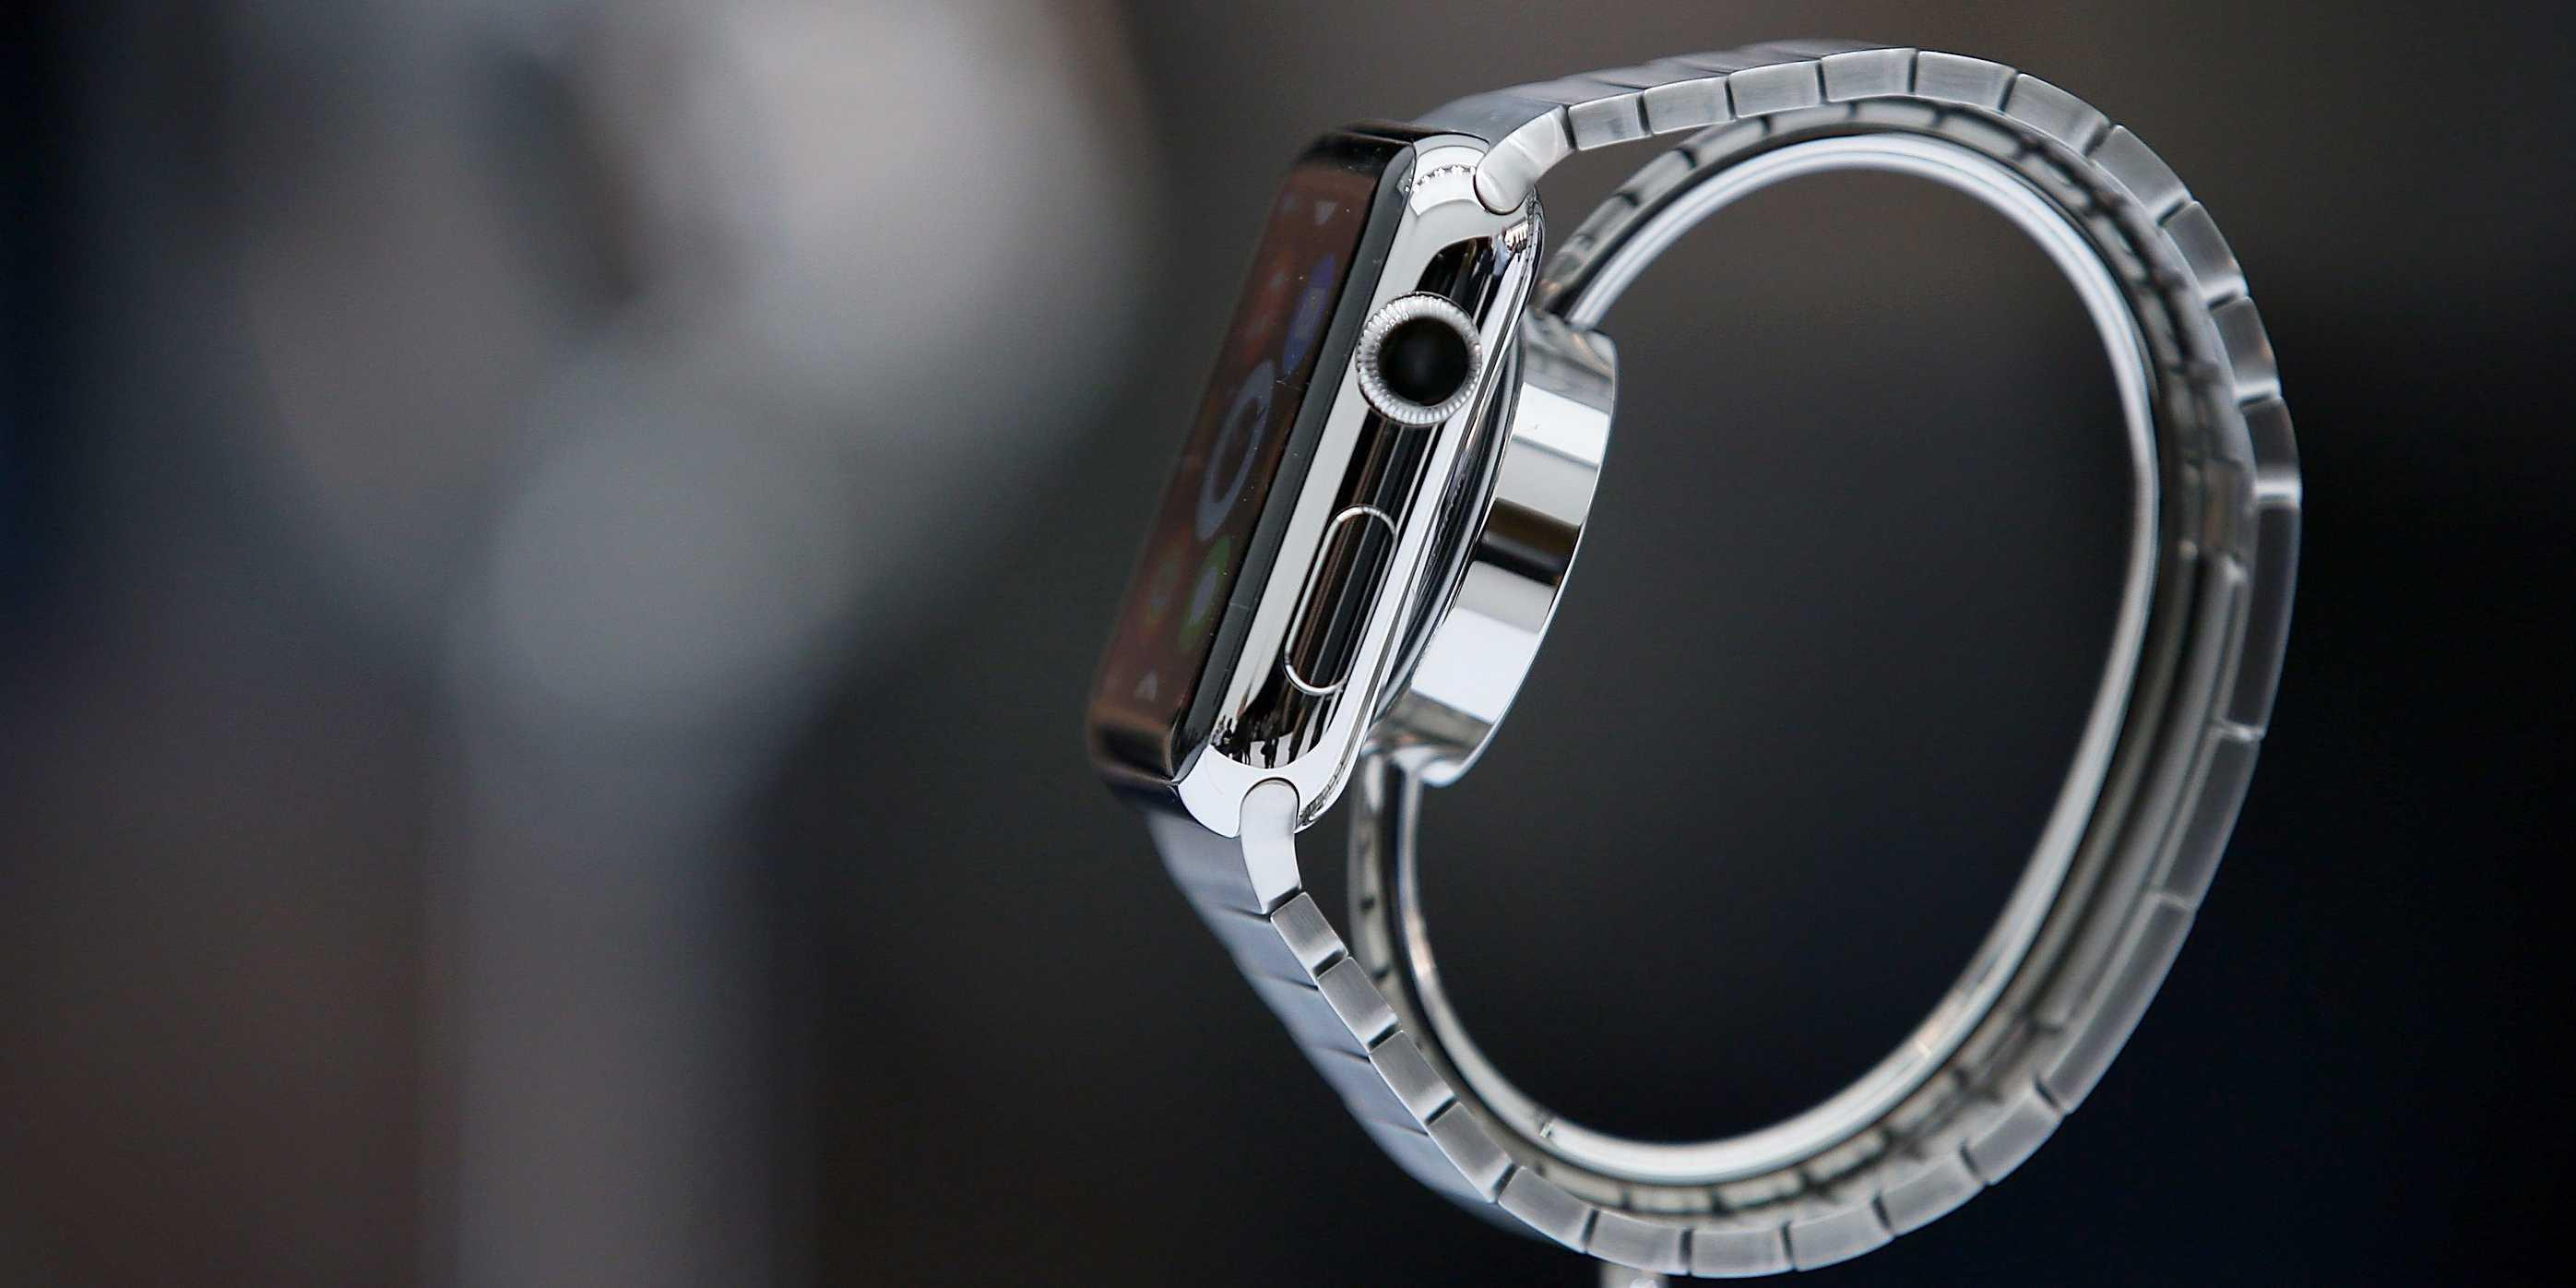 The New York Times is creating one-sentence stories for the Apple Watch